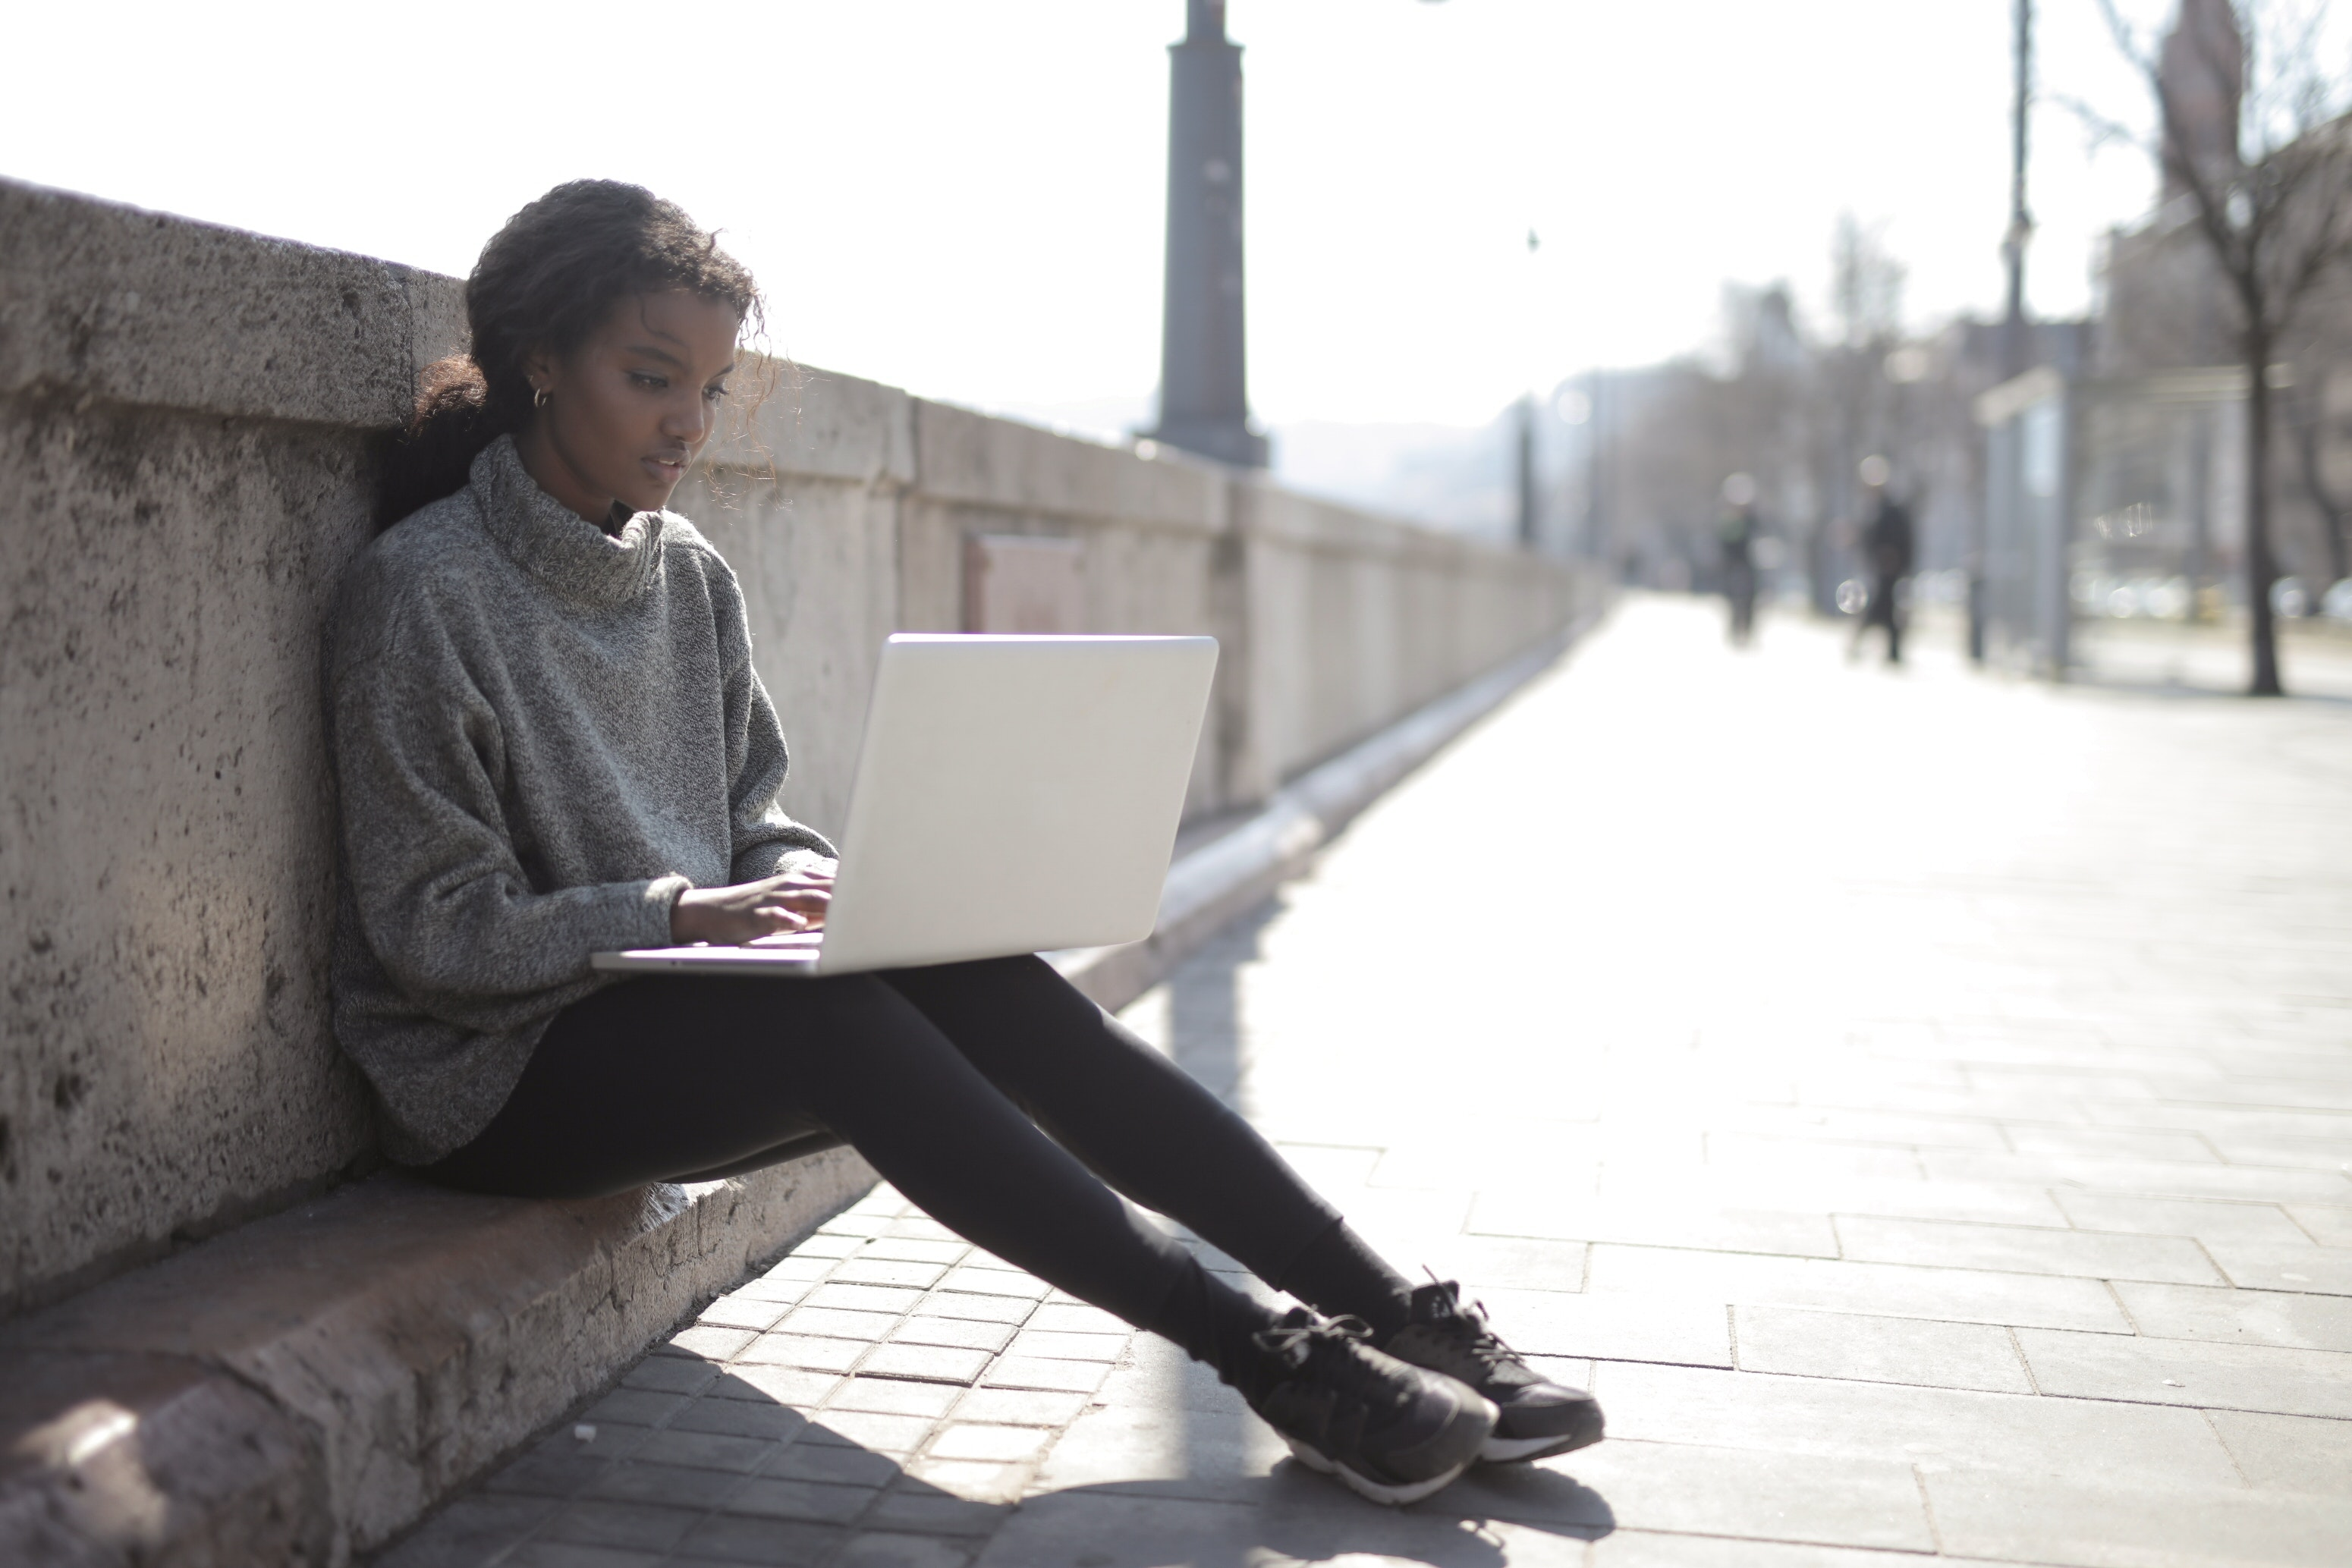 A woman in a grey sweater using her laptop outside, sitting against a bridge wall.